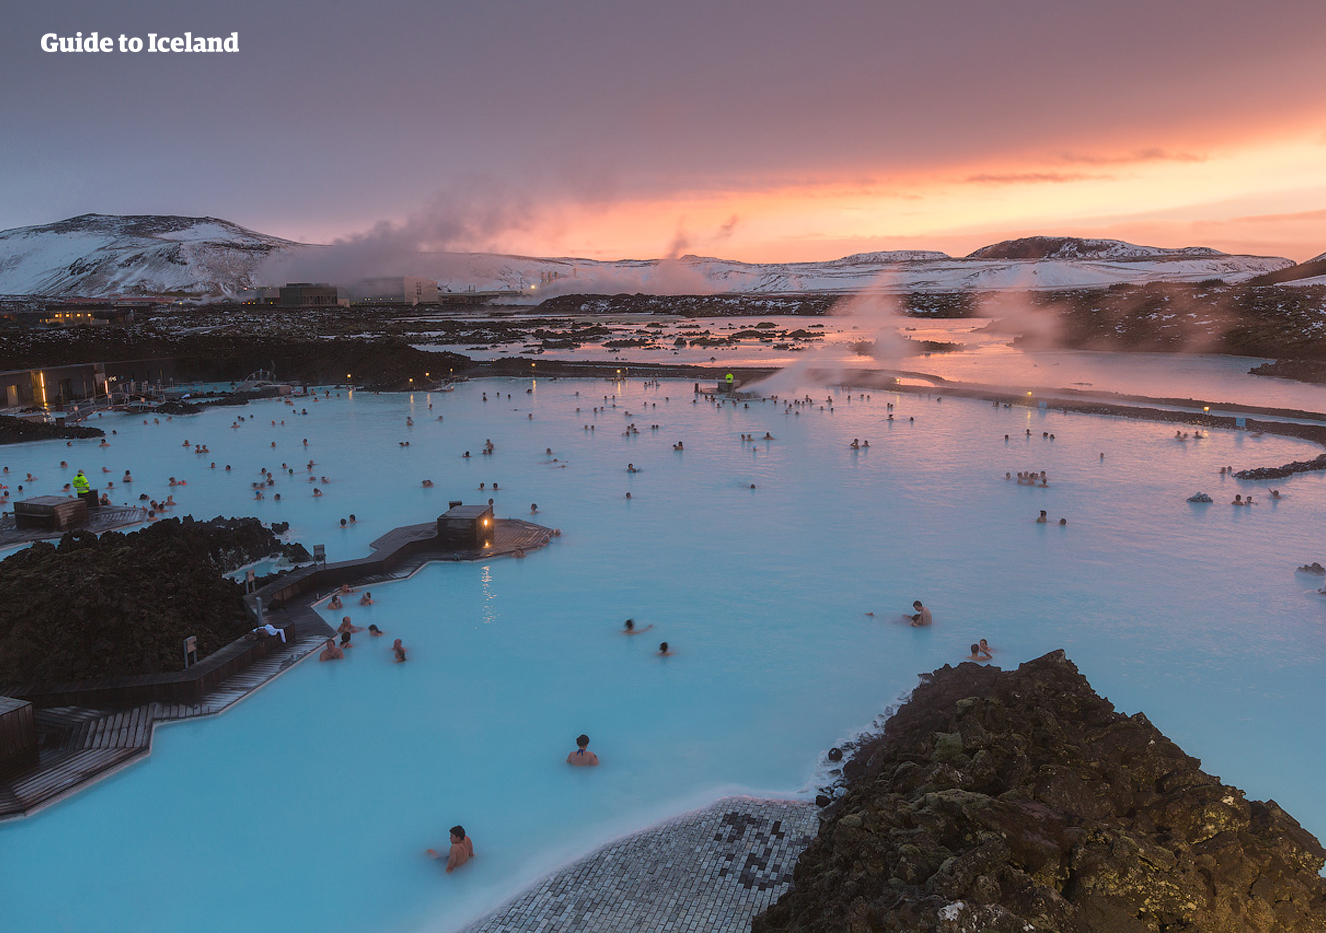 3 Day Summer Self Drive Tour of Iceland's Blue Lagoon, the Golden Circle & the South Coast - day 1